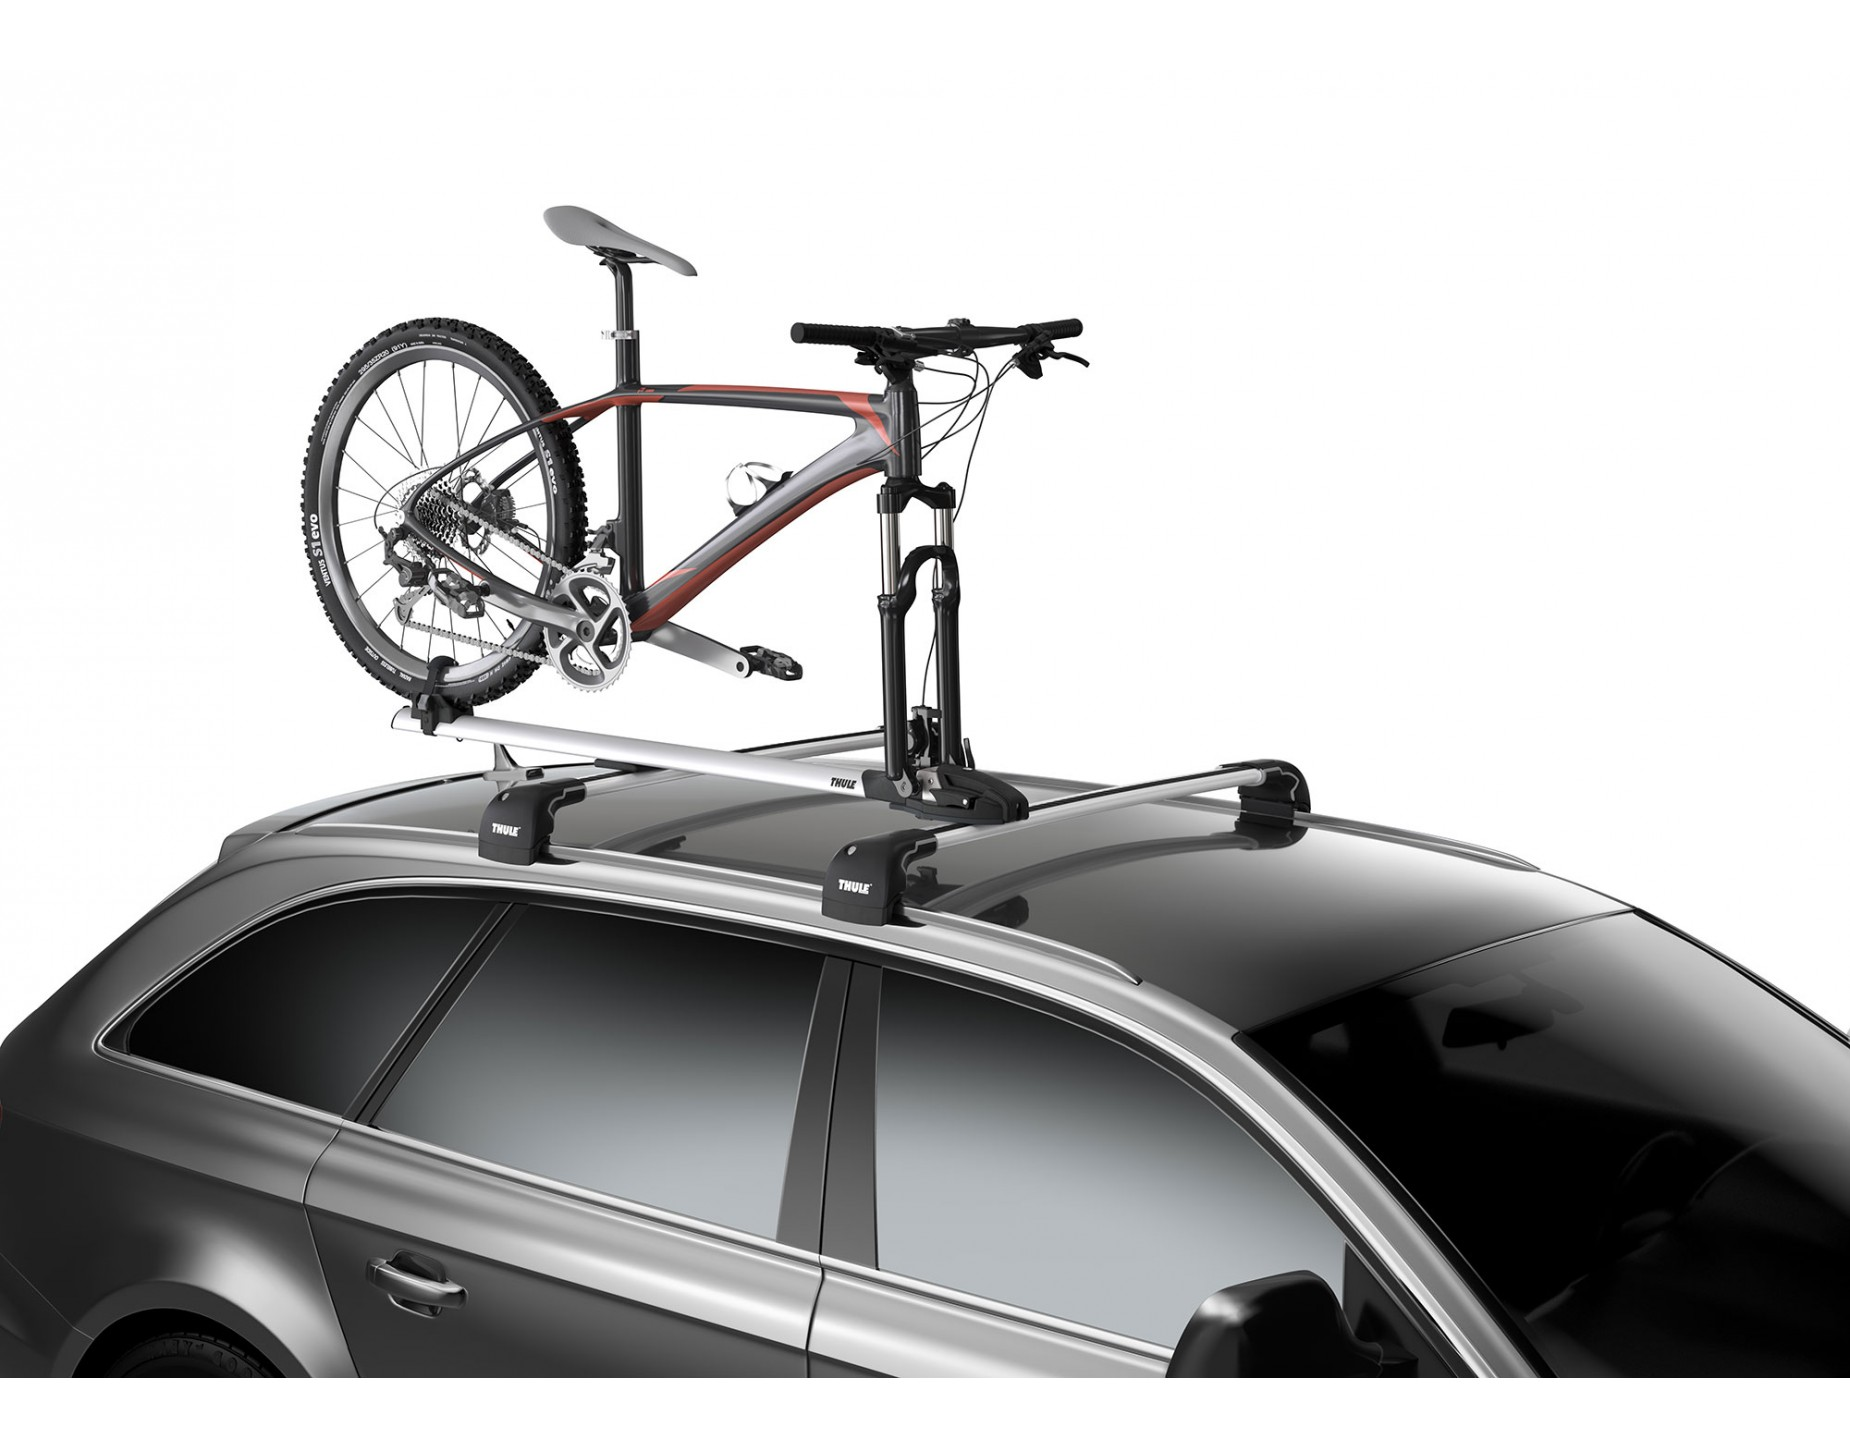 Thule thruride 565 roof rack everything you need rose for Porte velo thule